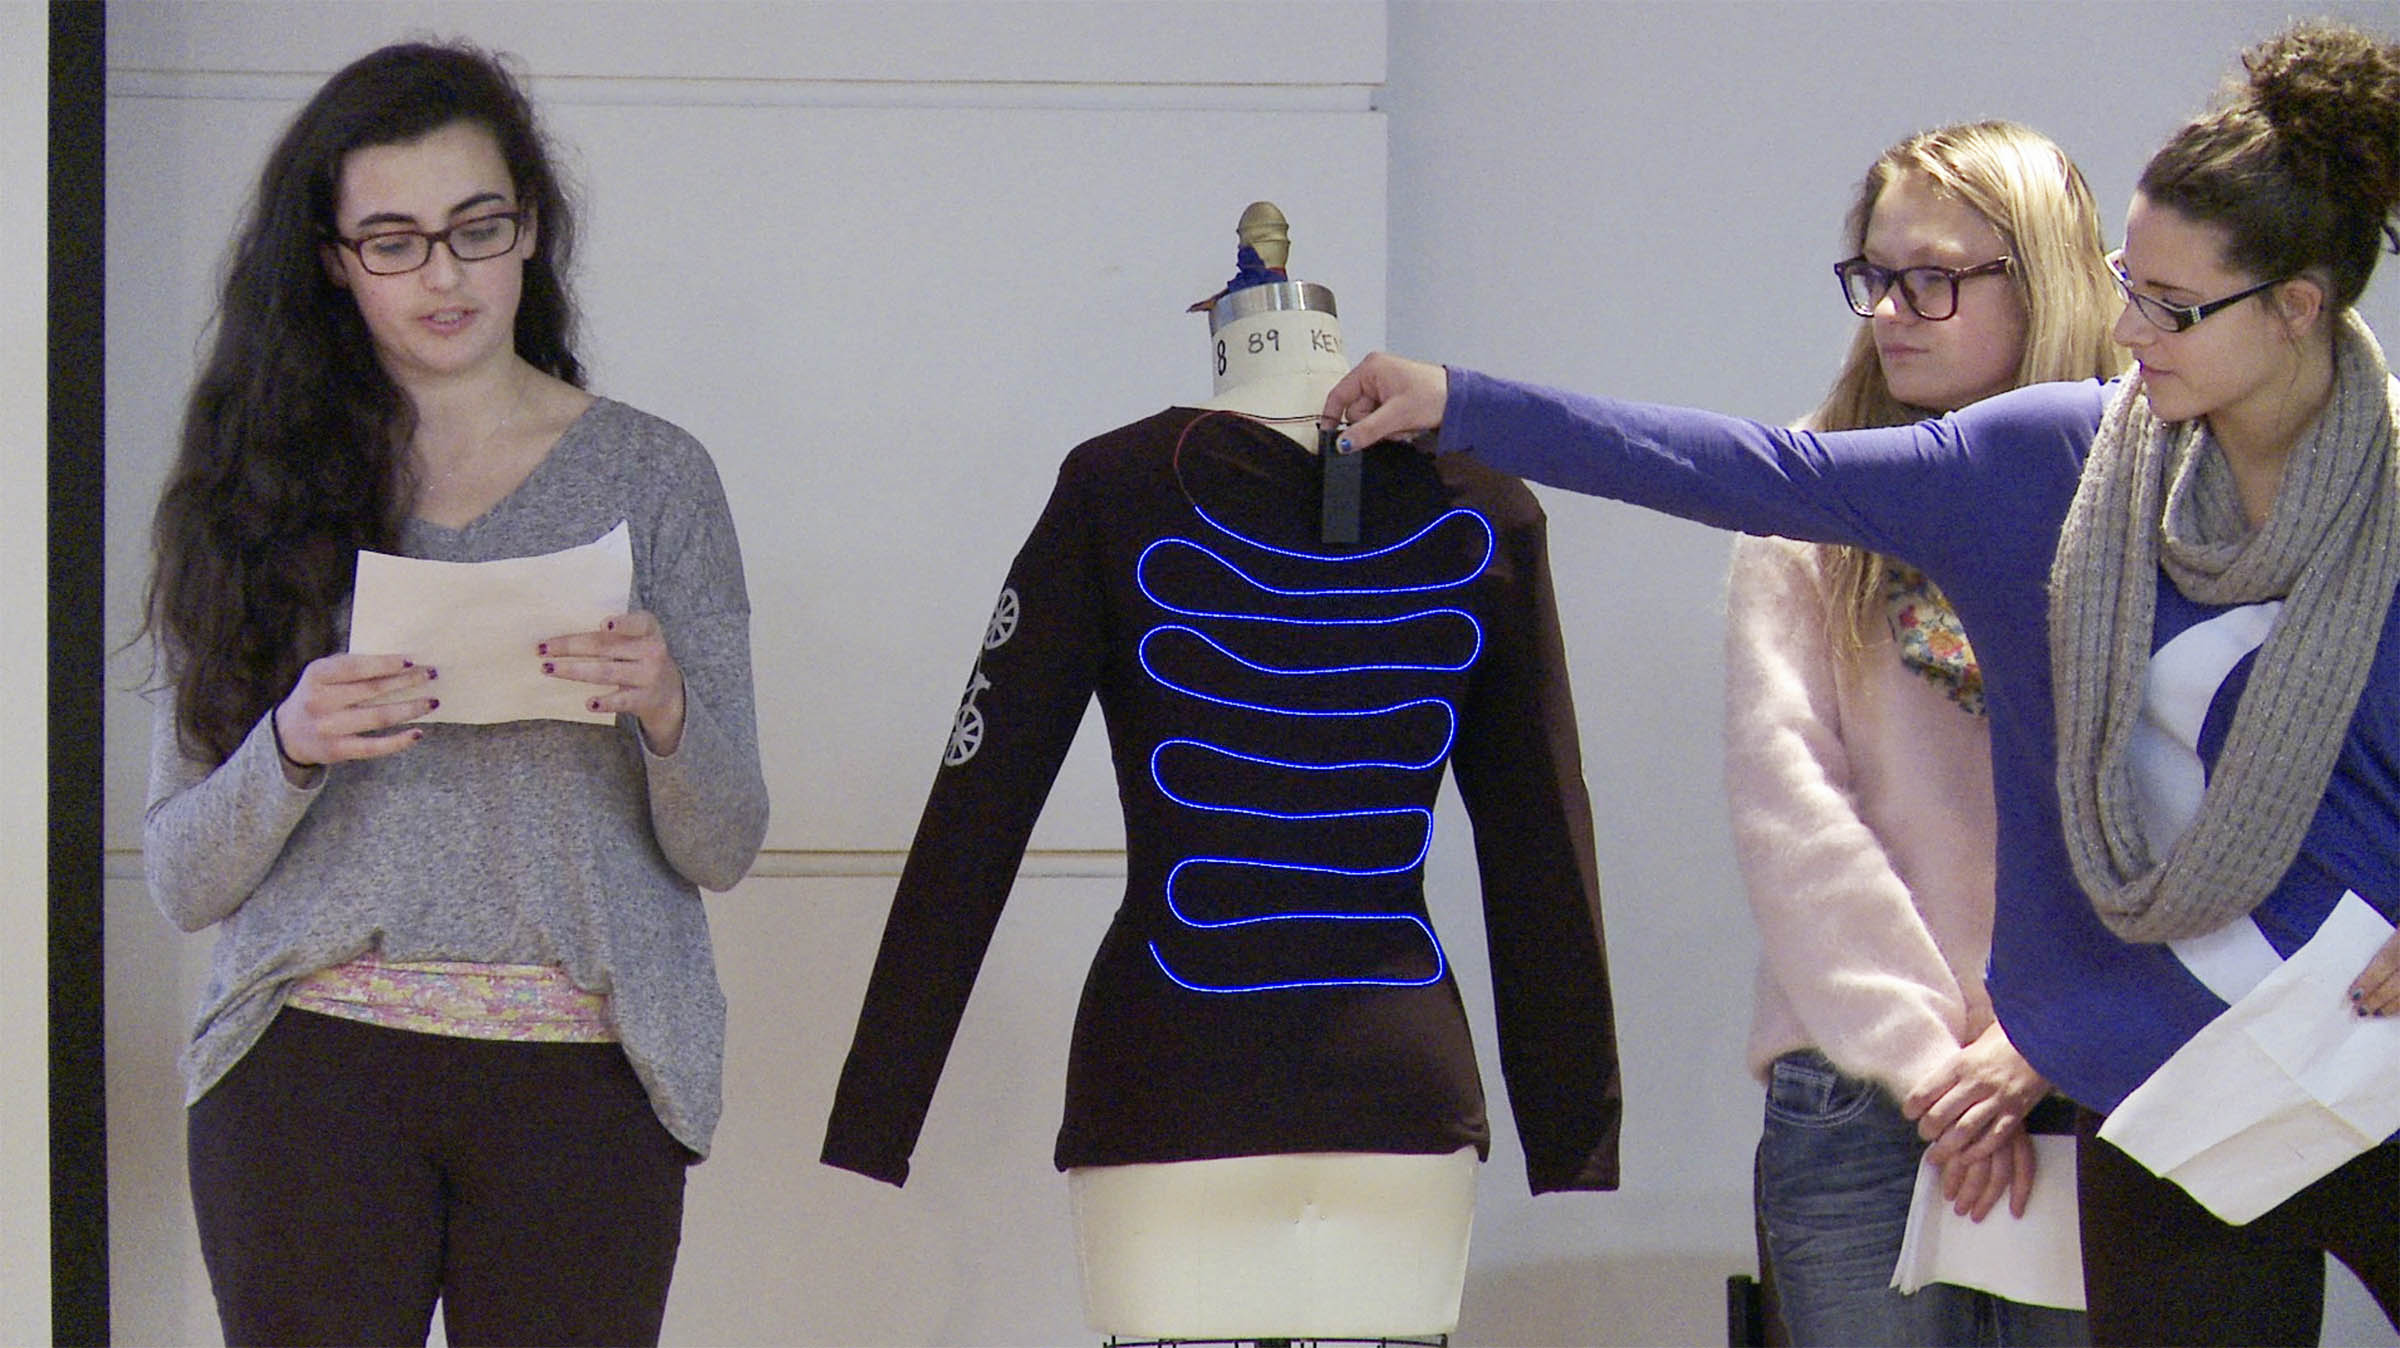 12.16.14 Photo 2 from Kent State's Fashion-Tech Hackathon.jpg